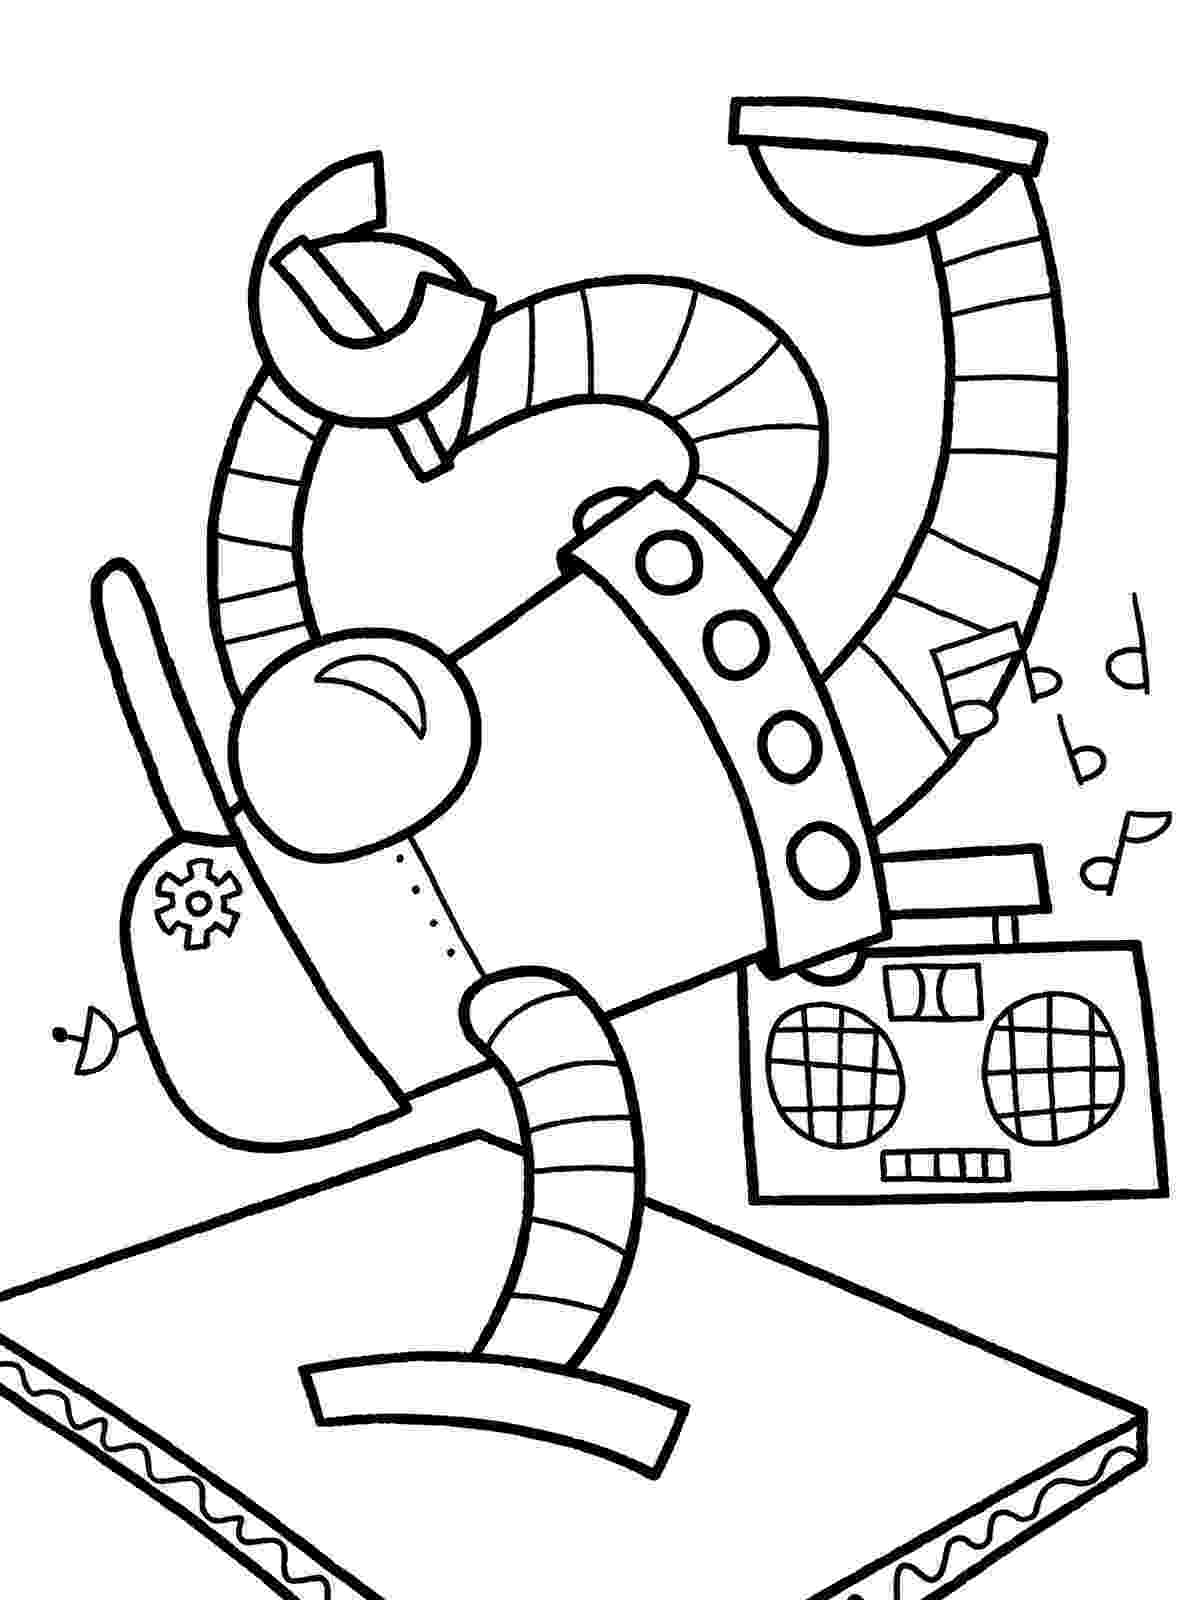 robot coloring sheets robots coloring pages coloring pages sheets robot coloring